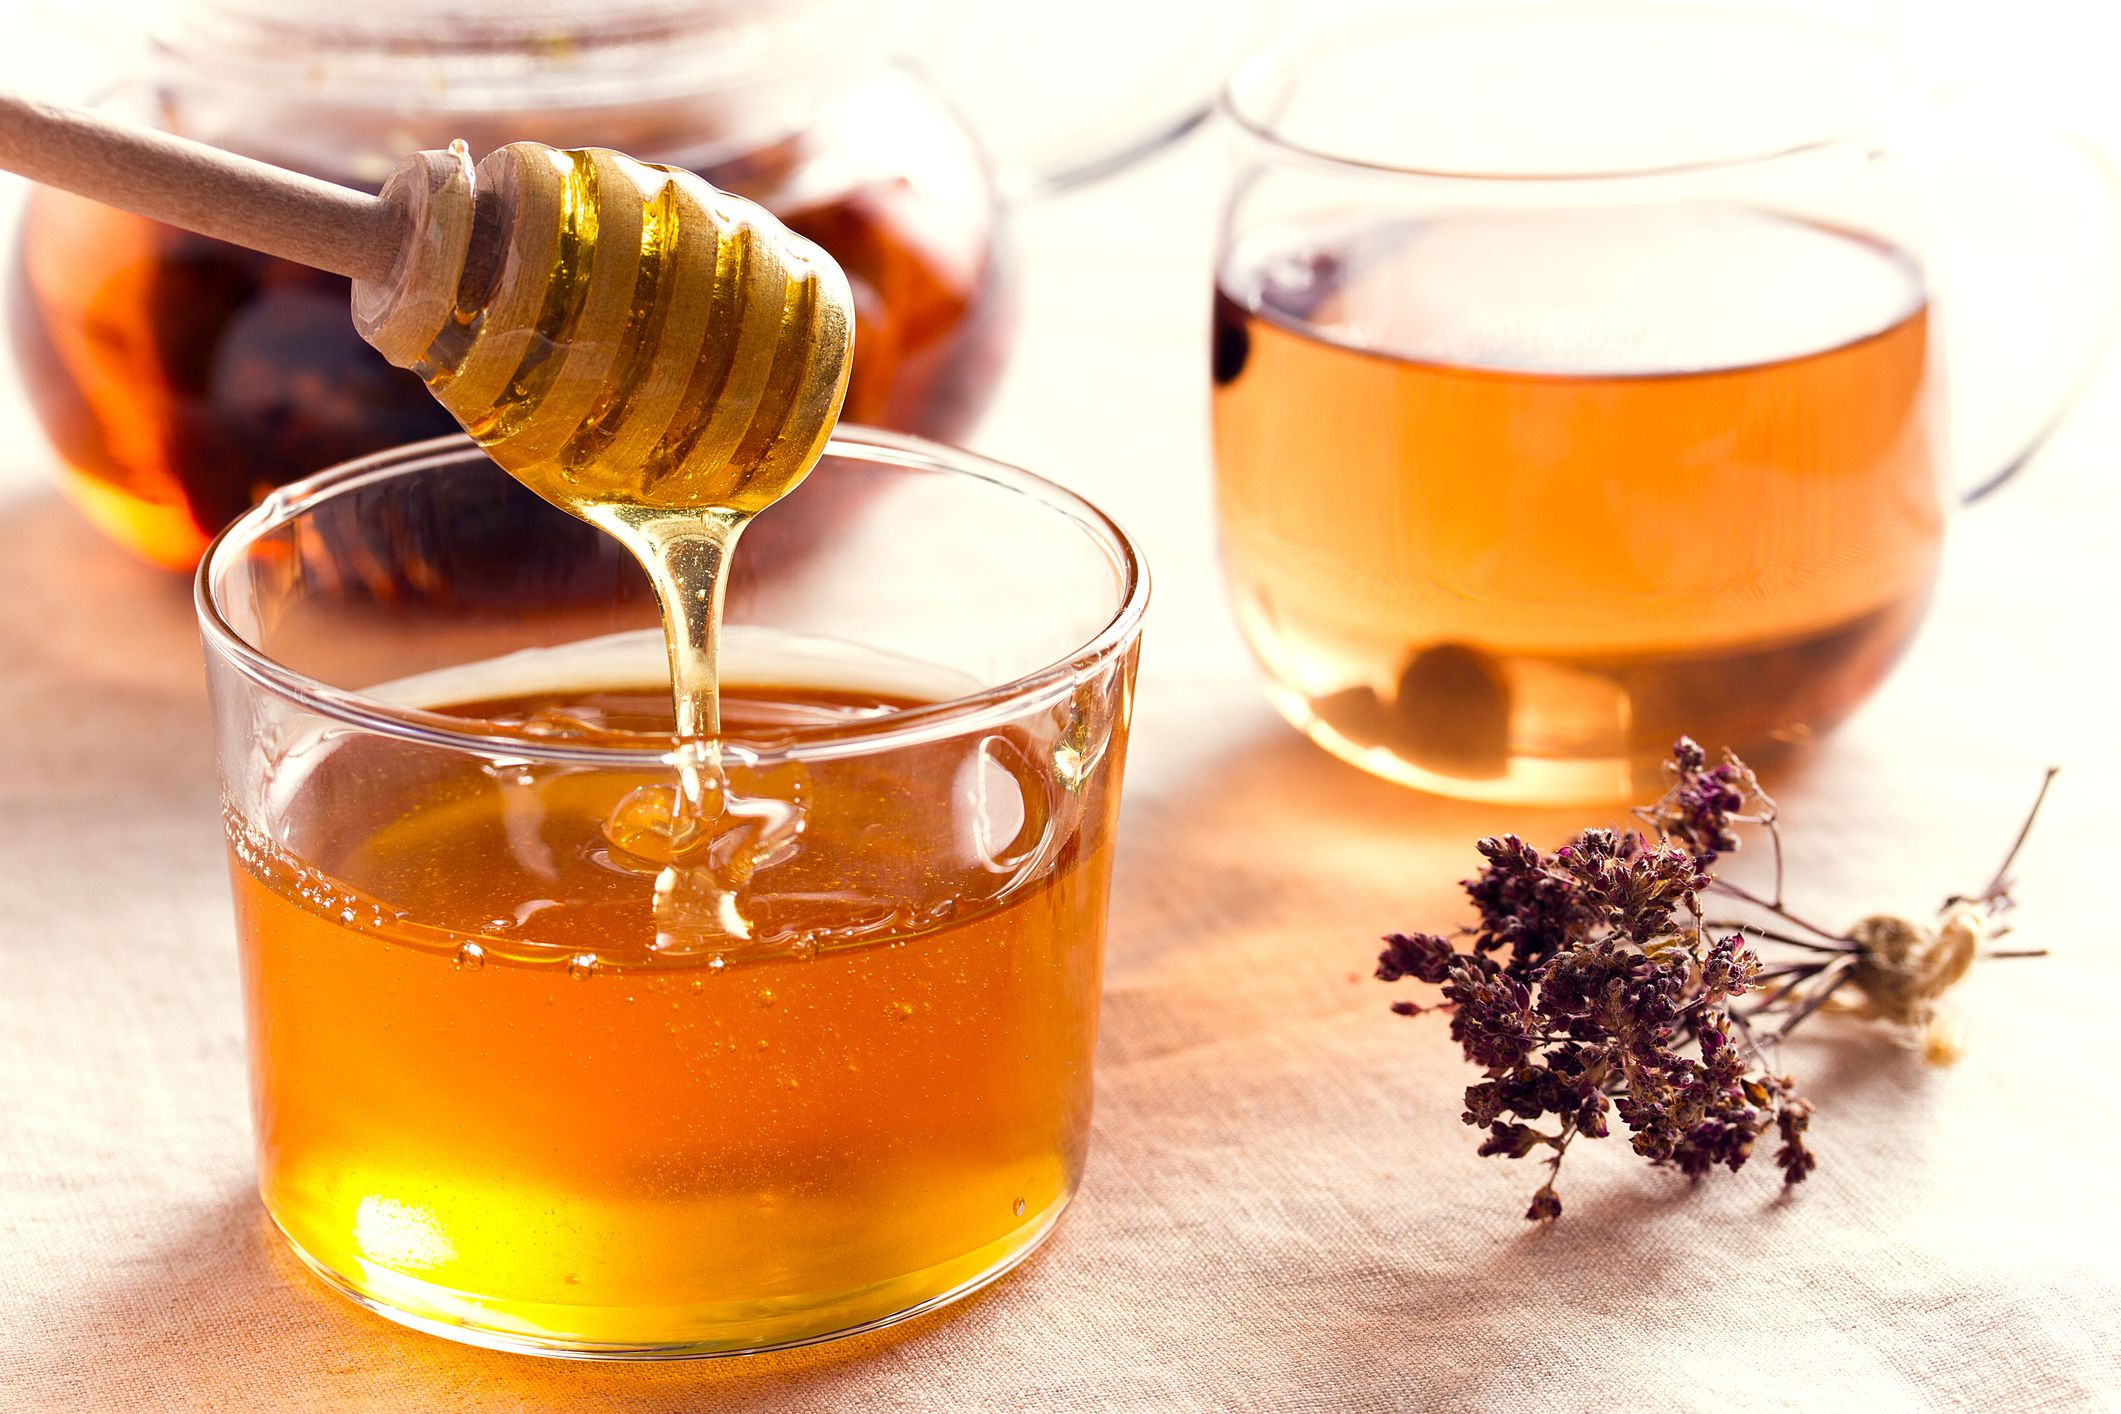 8 Ways to Use Honey to Pamper Your Skin and Hair